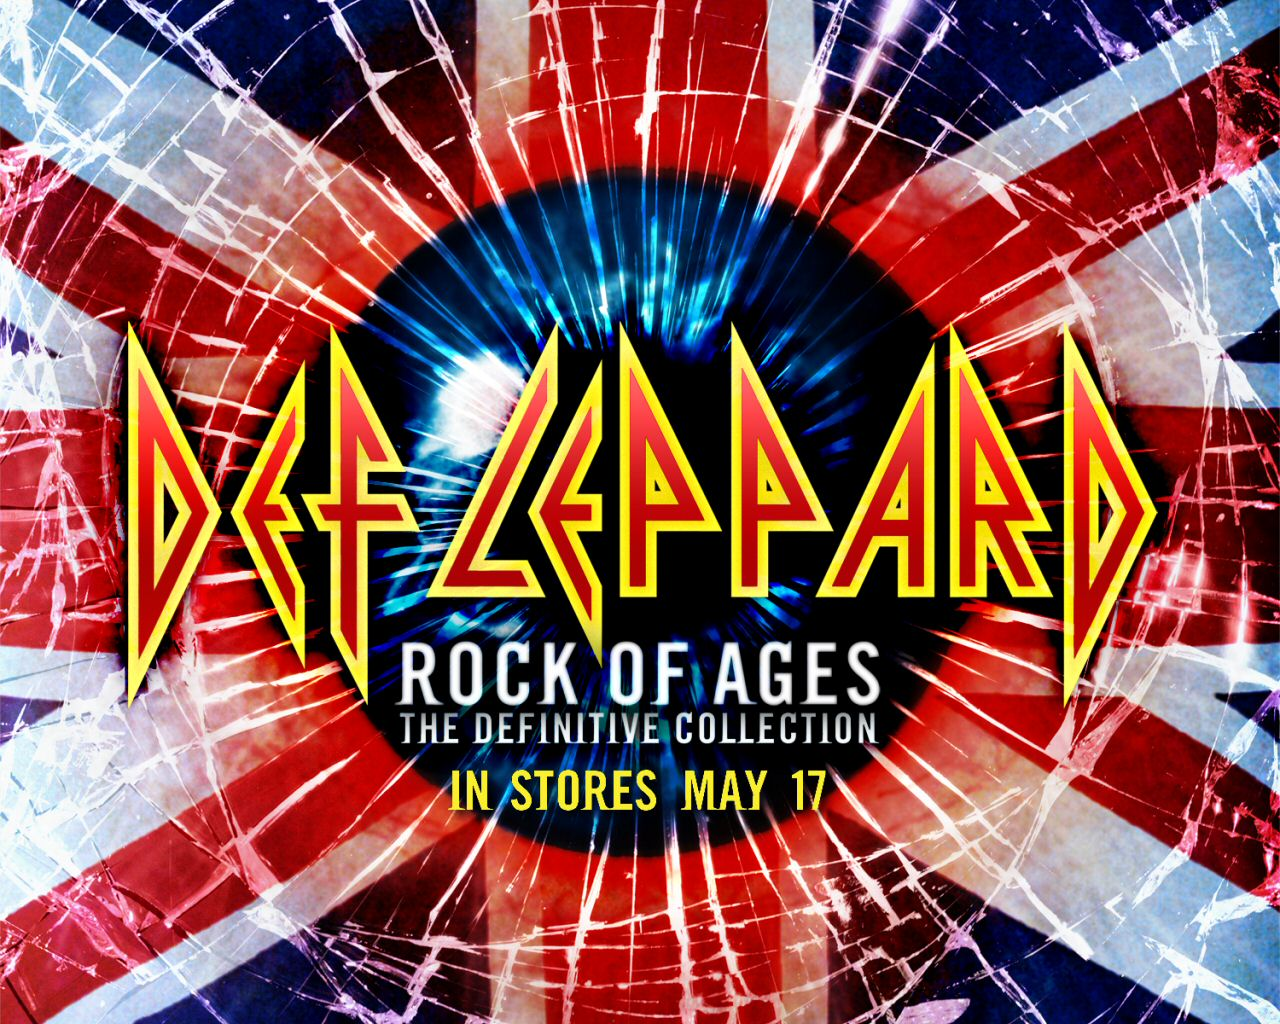 littler blog: def leppard rock of ages